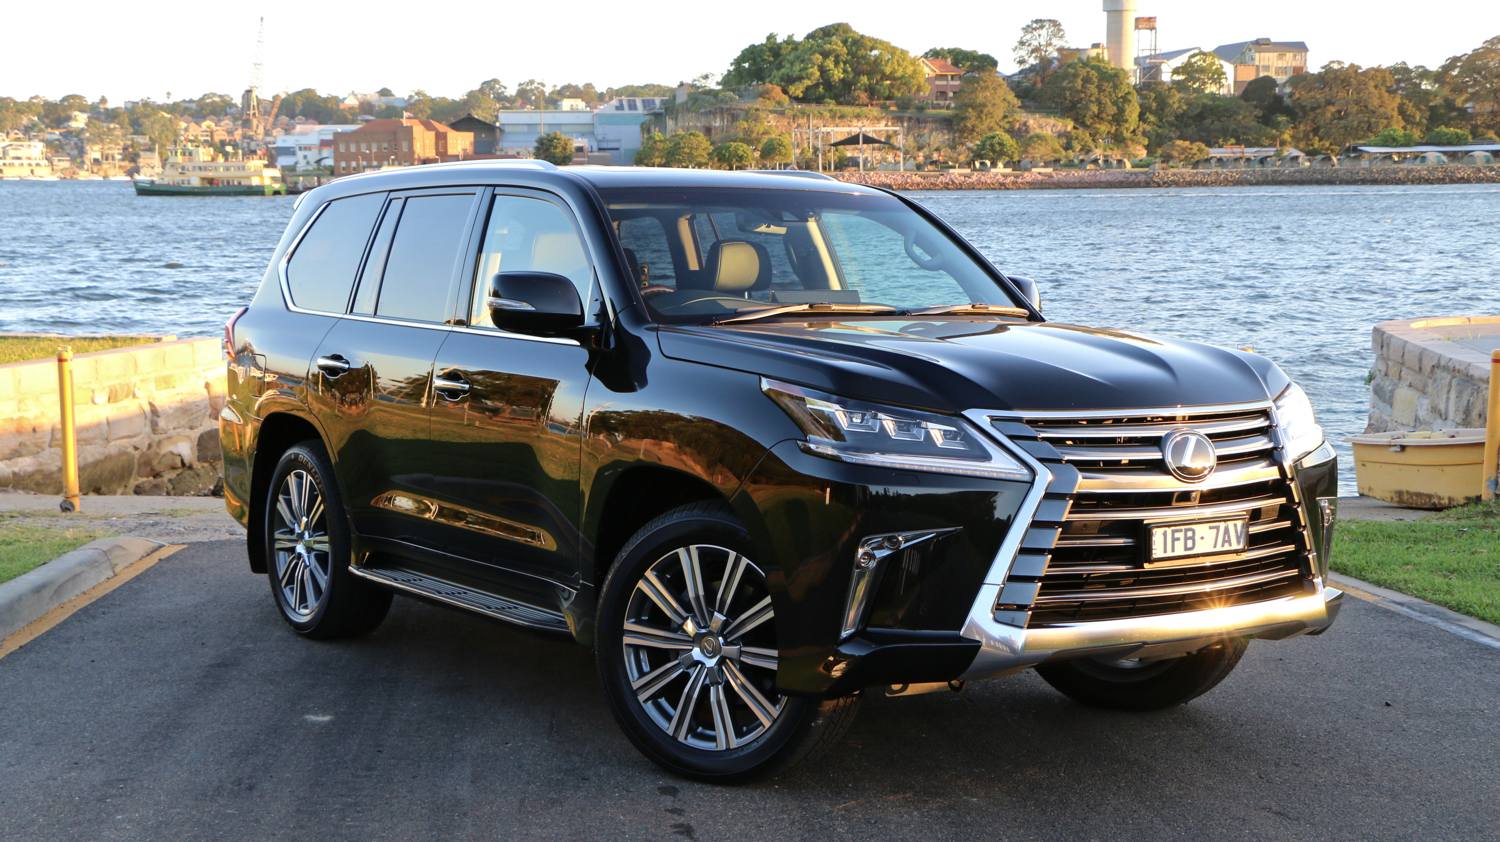 2016 Cadillac Convertible >> 2016 Lexus LX 570 Review - Chasing Cars